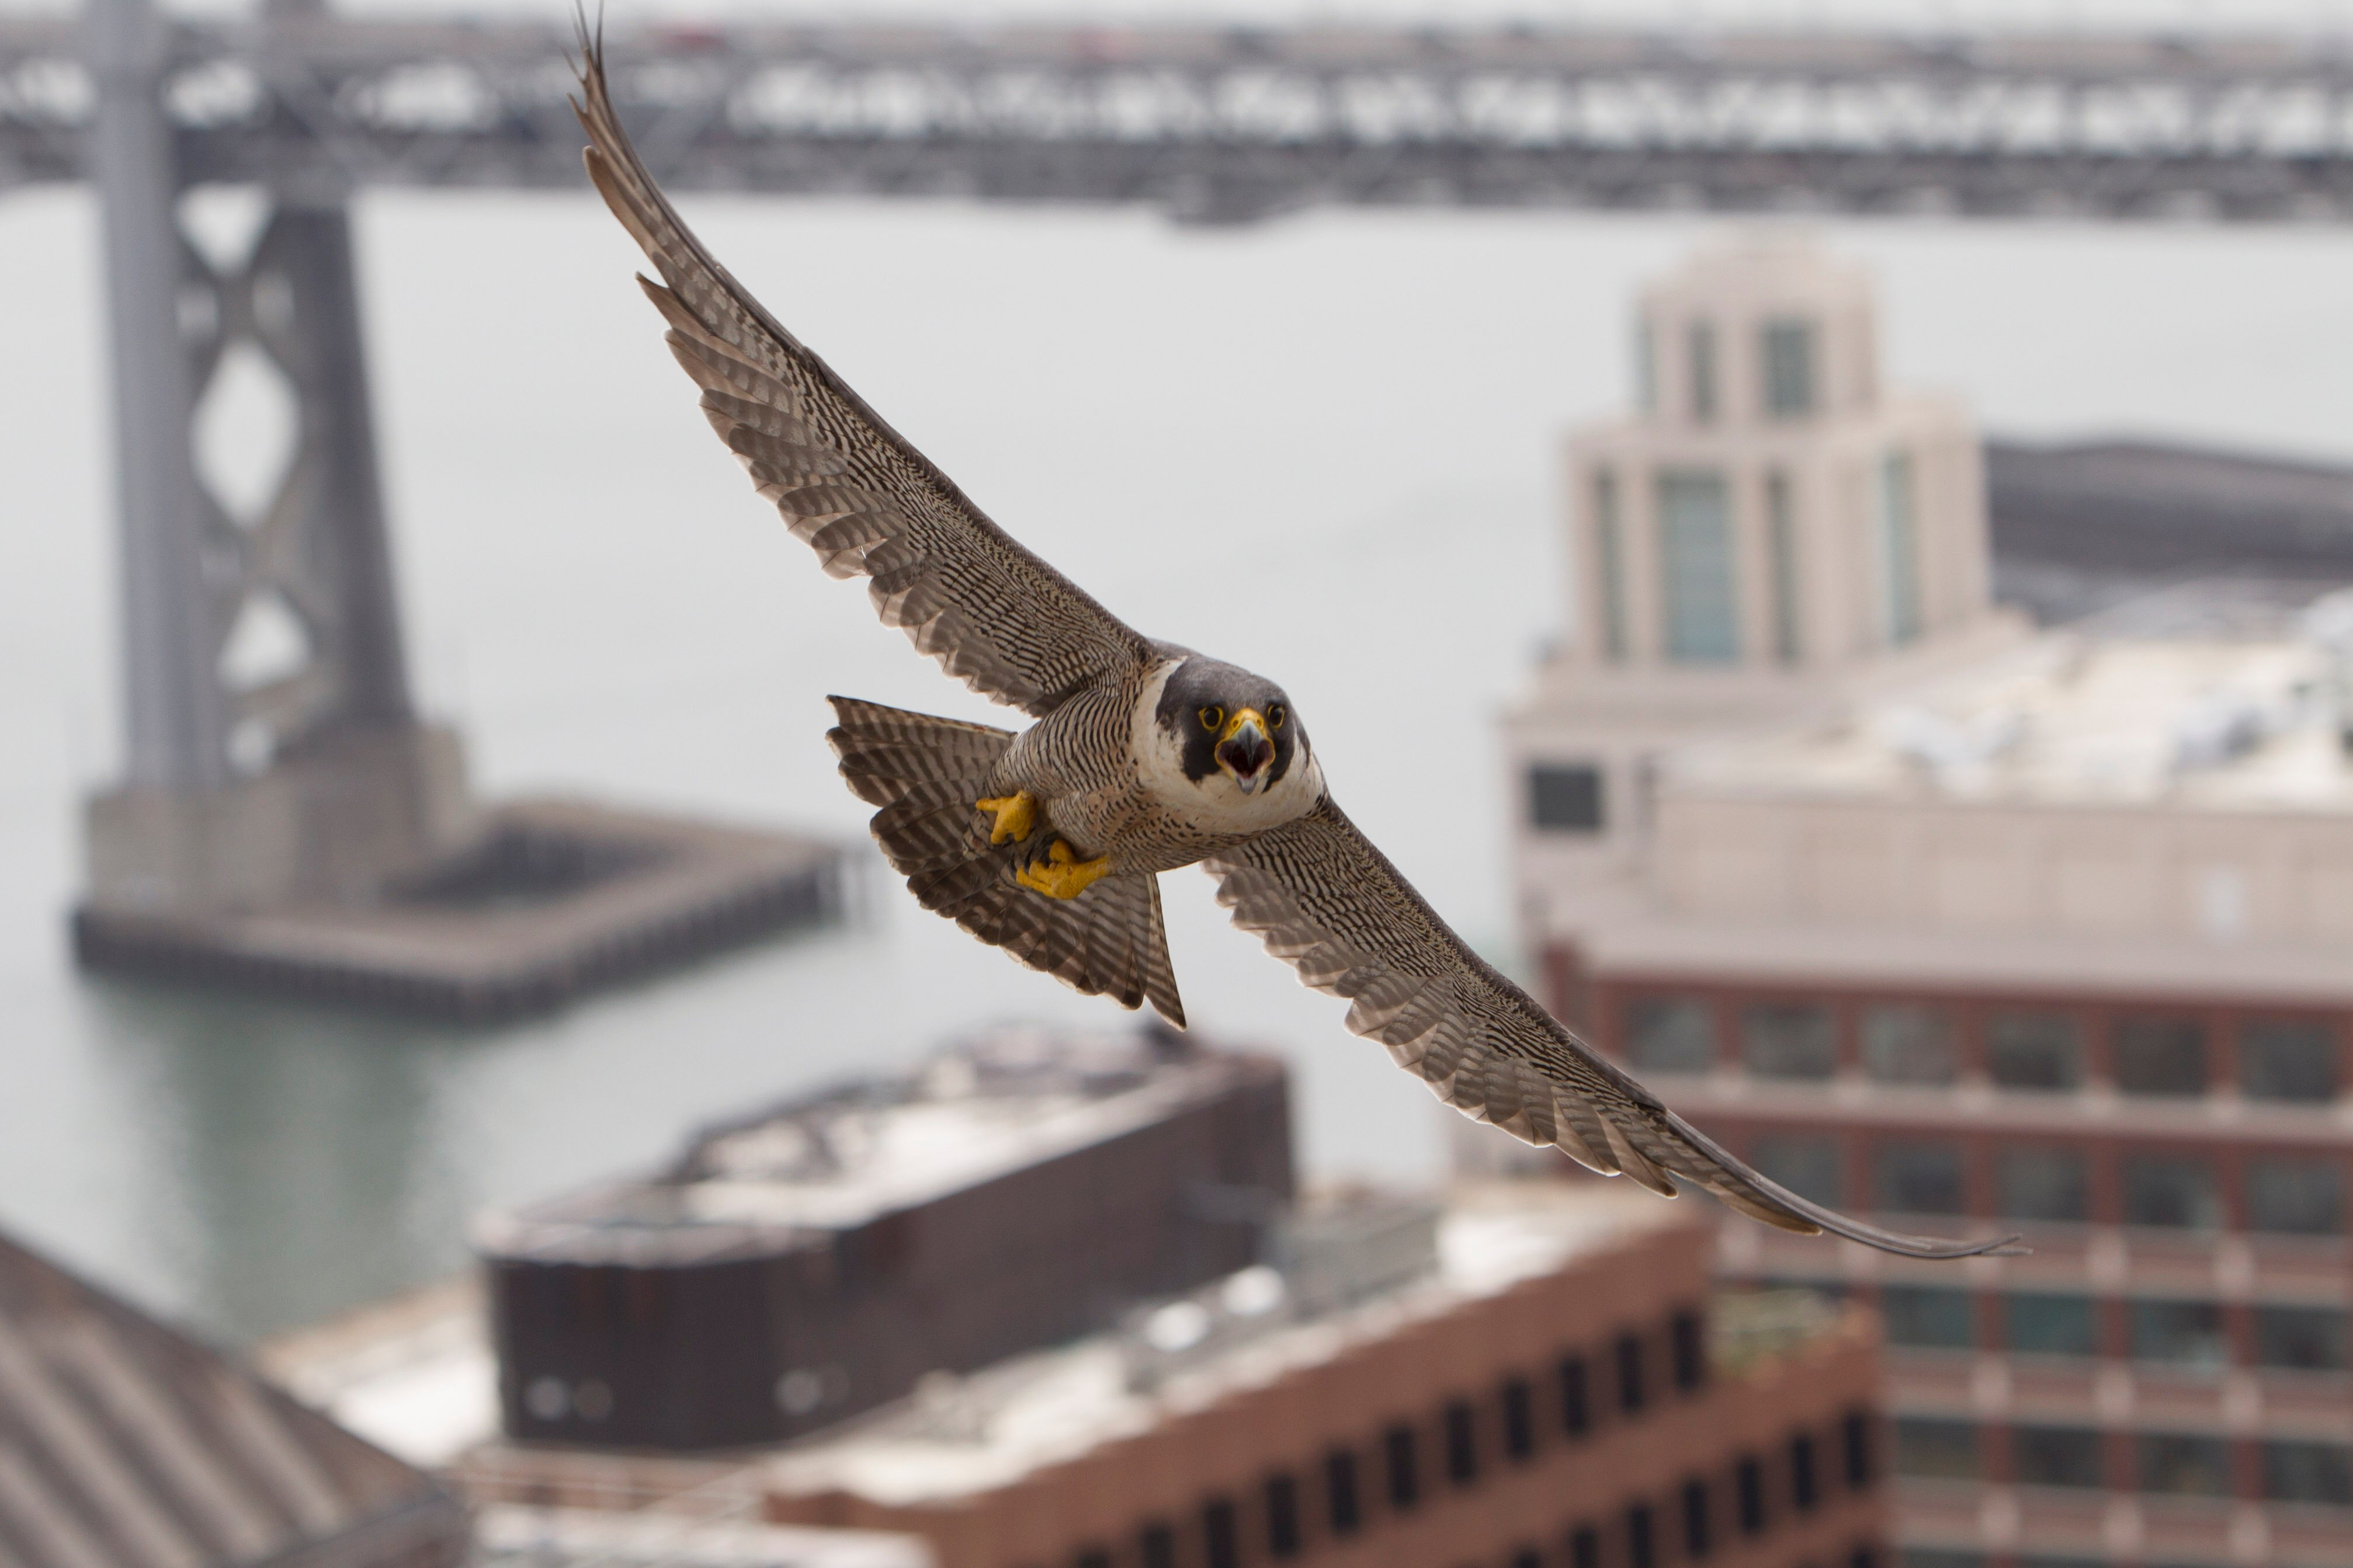 one of the falcons flying close to the PG&E building with a portion of the bay bridge in the background